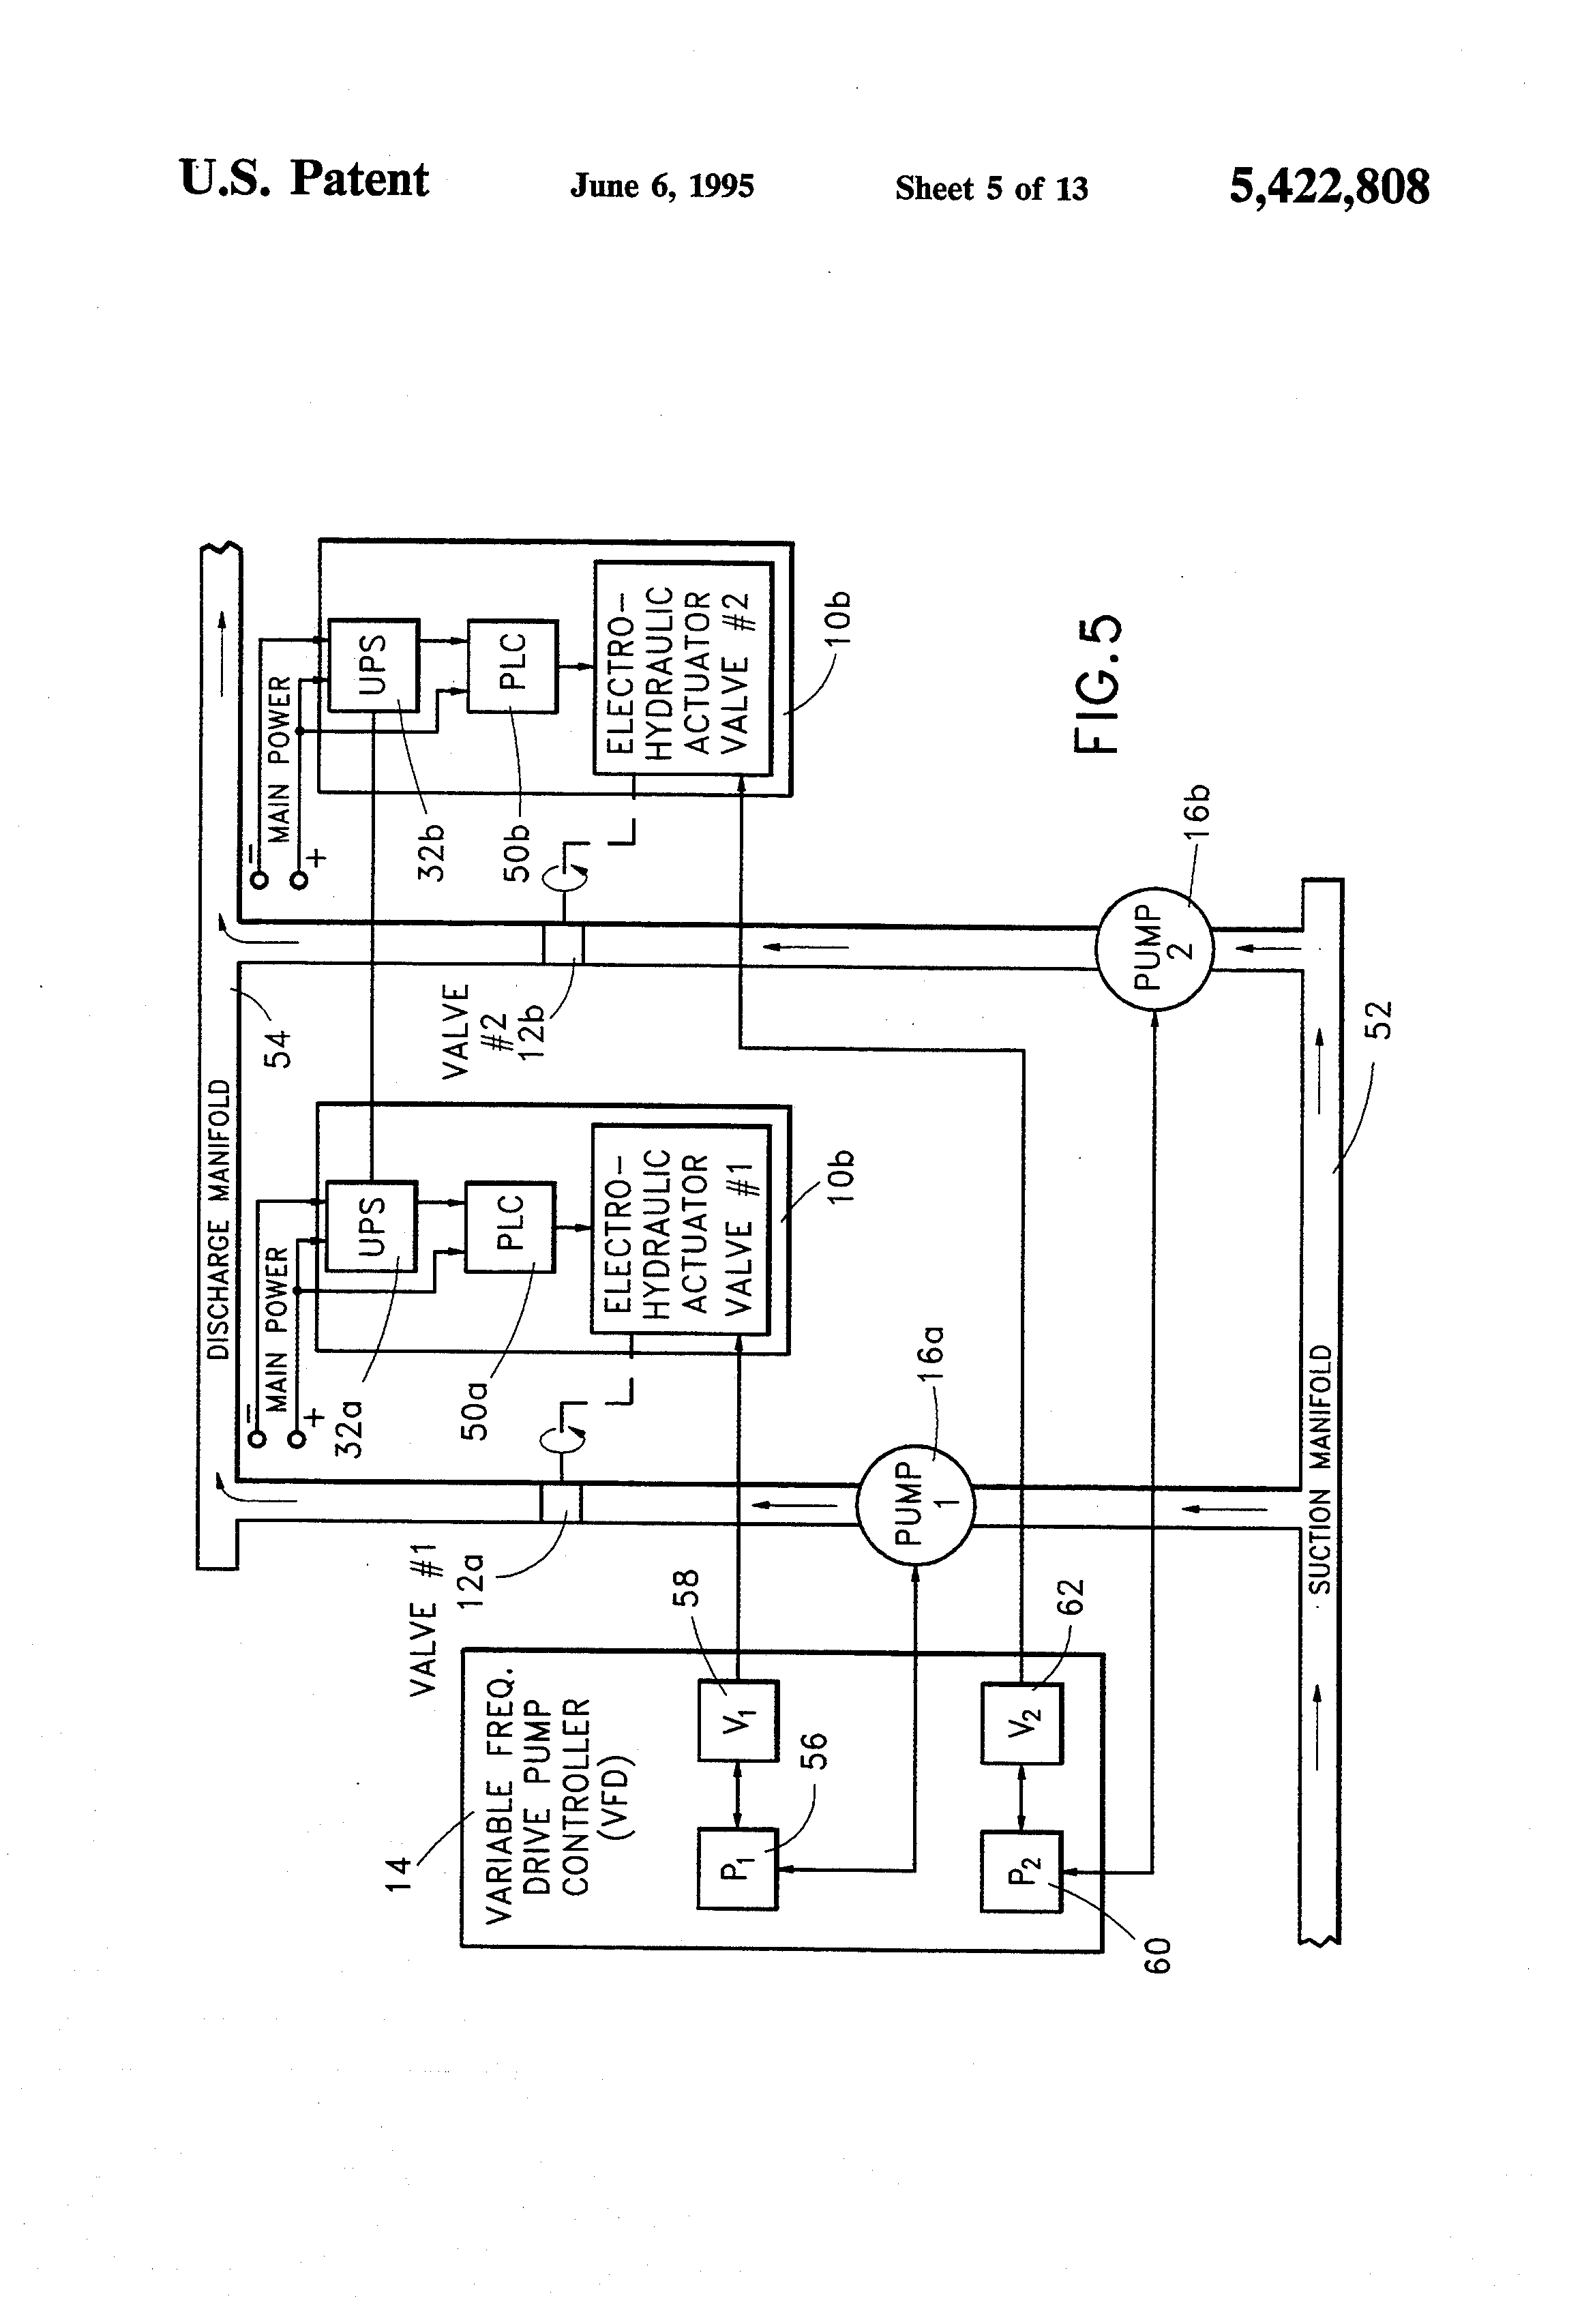 US5422808 5 mov wiring diagram auma mov wiring diagram \u2022 wiring diagrams j rotork actuator wiring diagram at webbmarketing.co